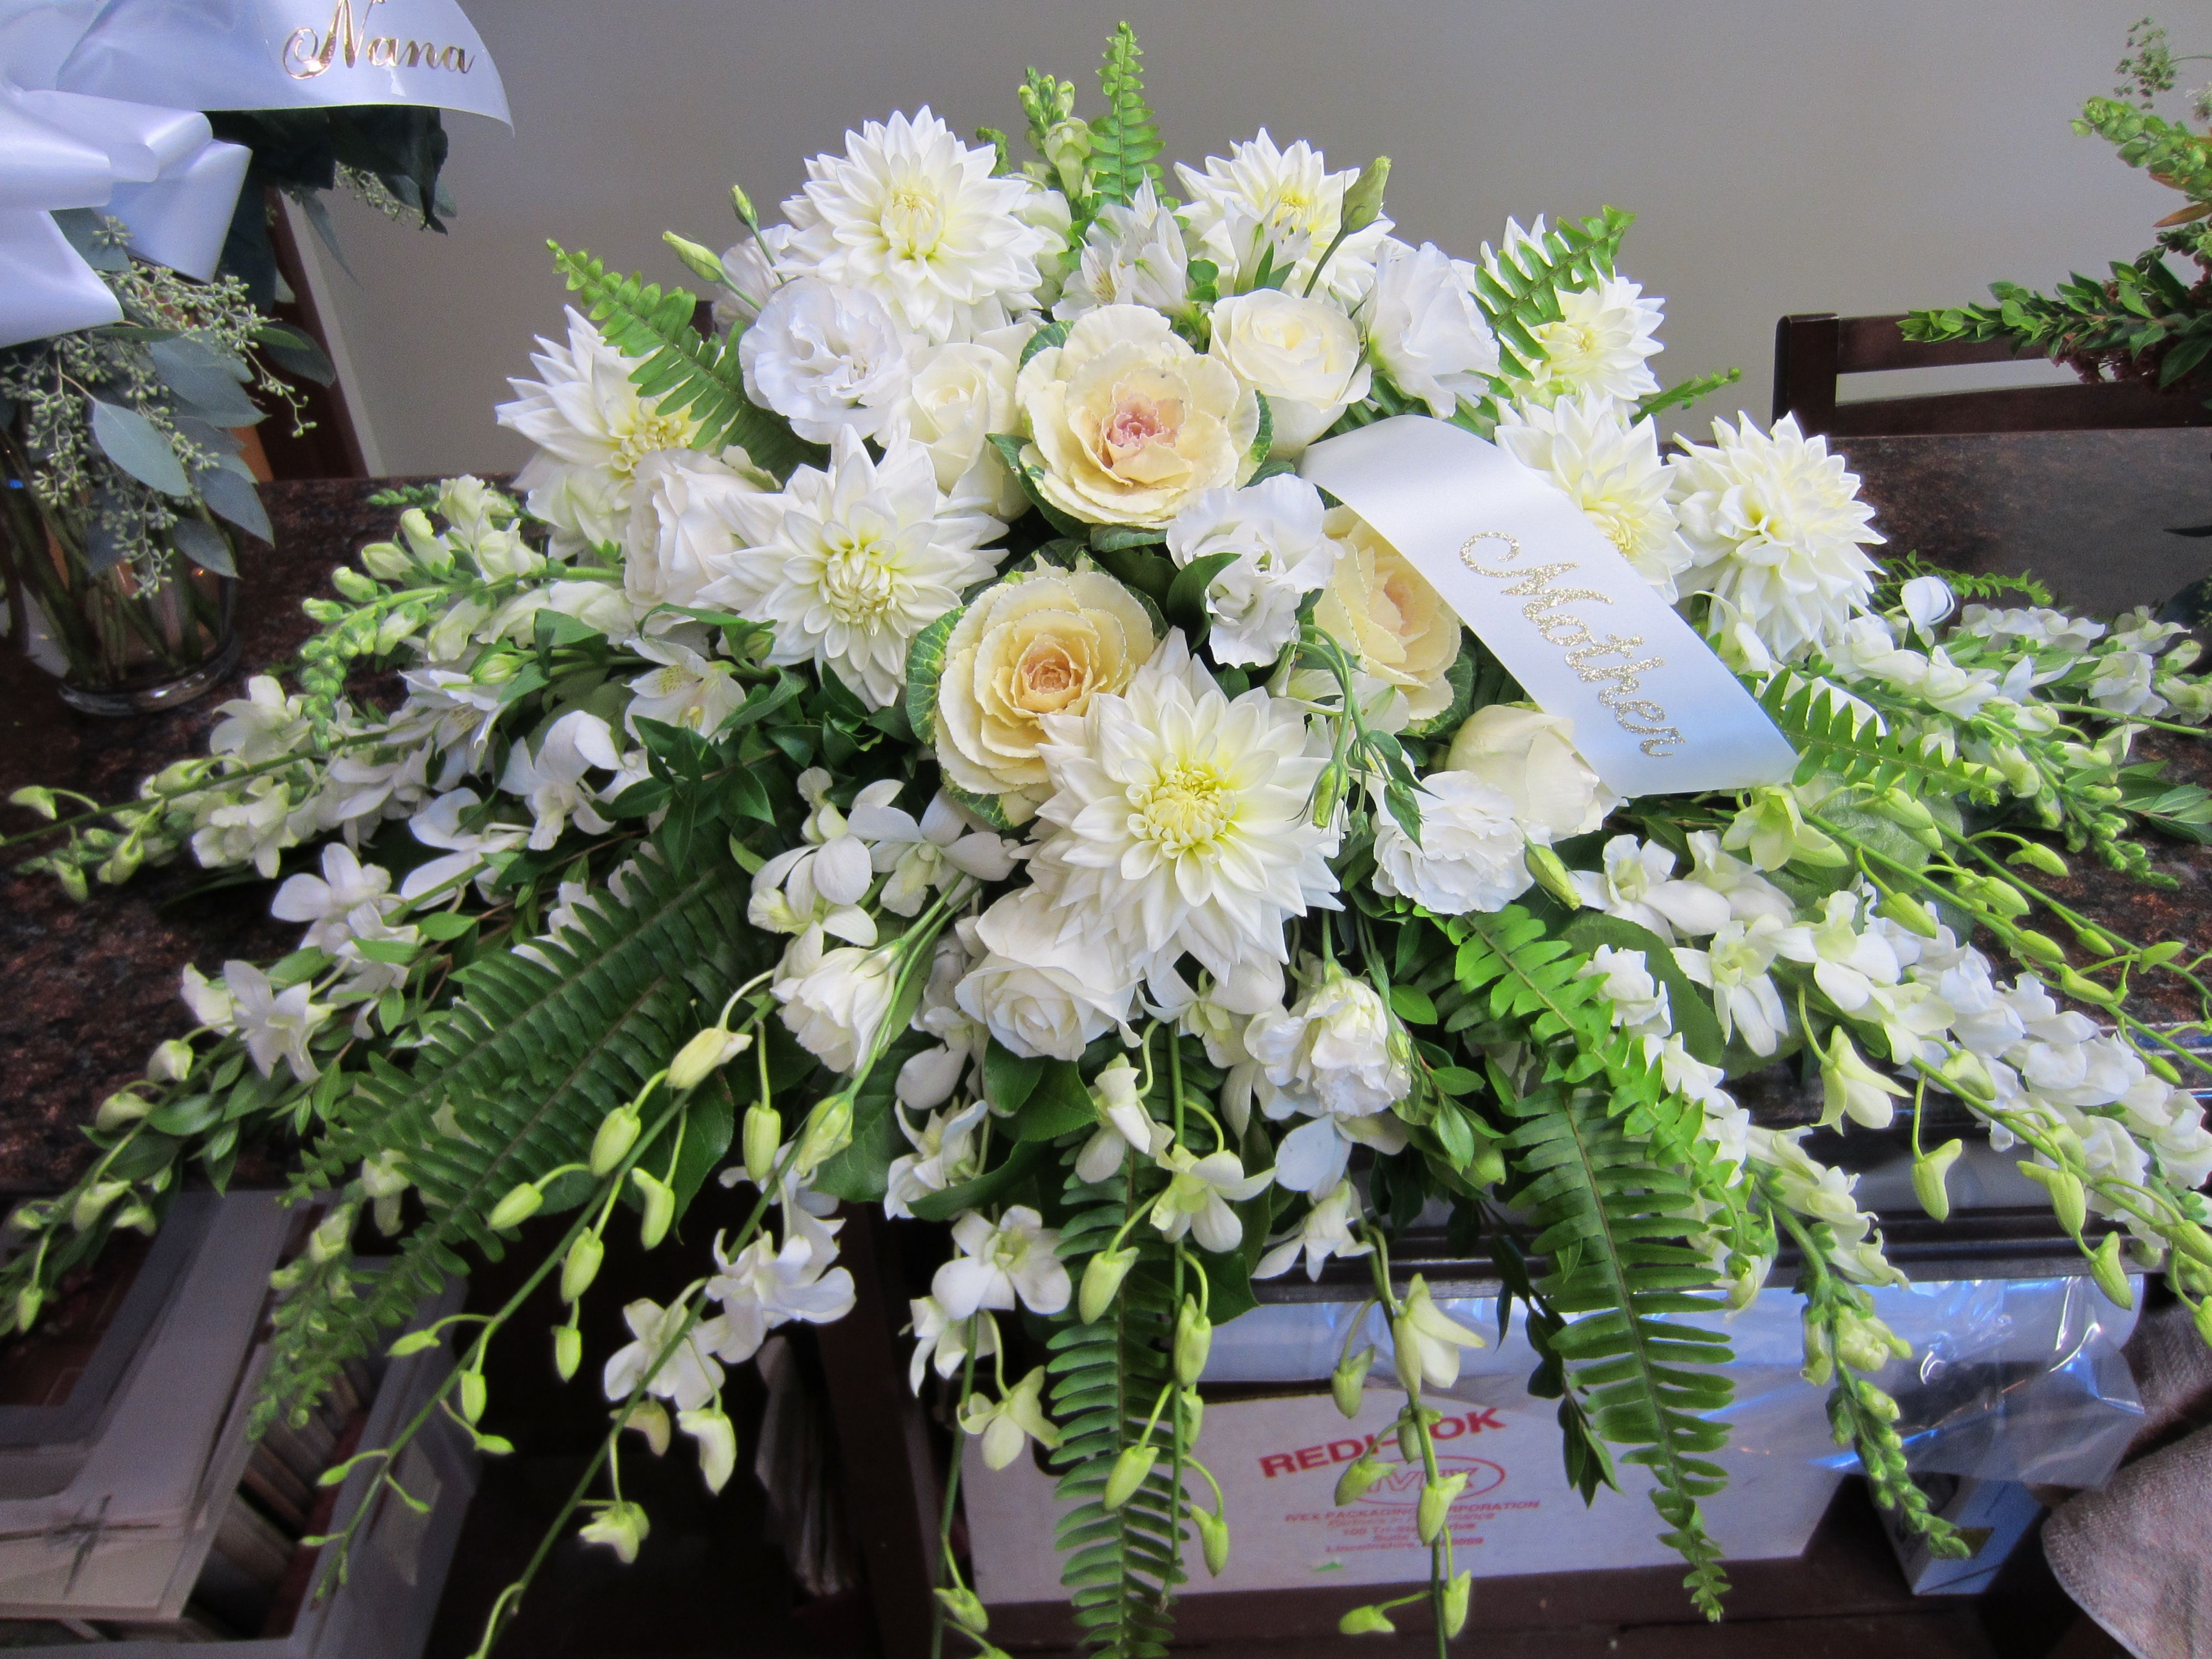 Shades Of White Flowers For The Casket Include Orchids Kale Dahlias And Roses Funeral Flowers Casket Flowers Funeral Flower Arrangements